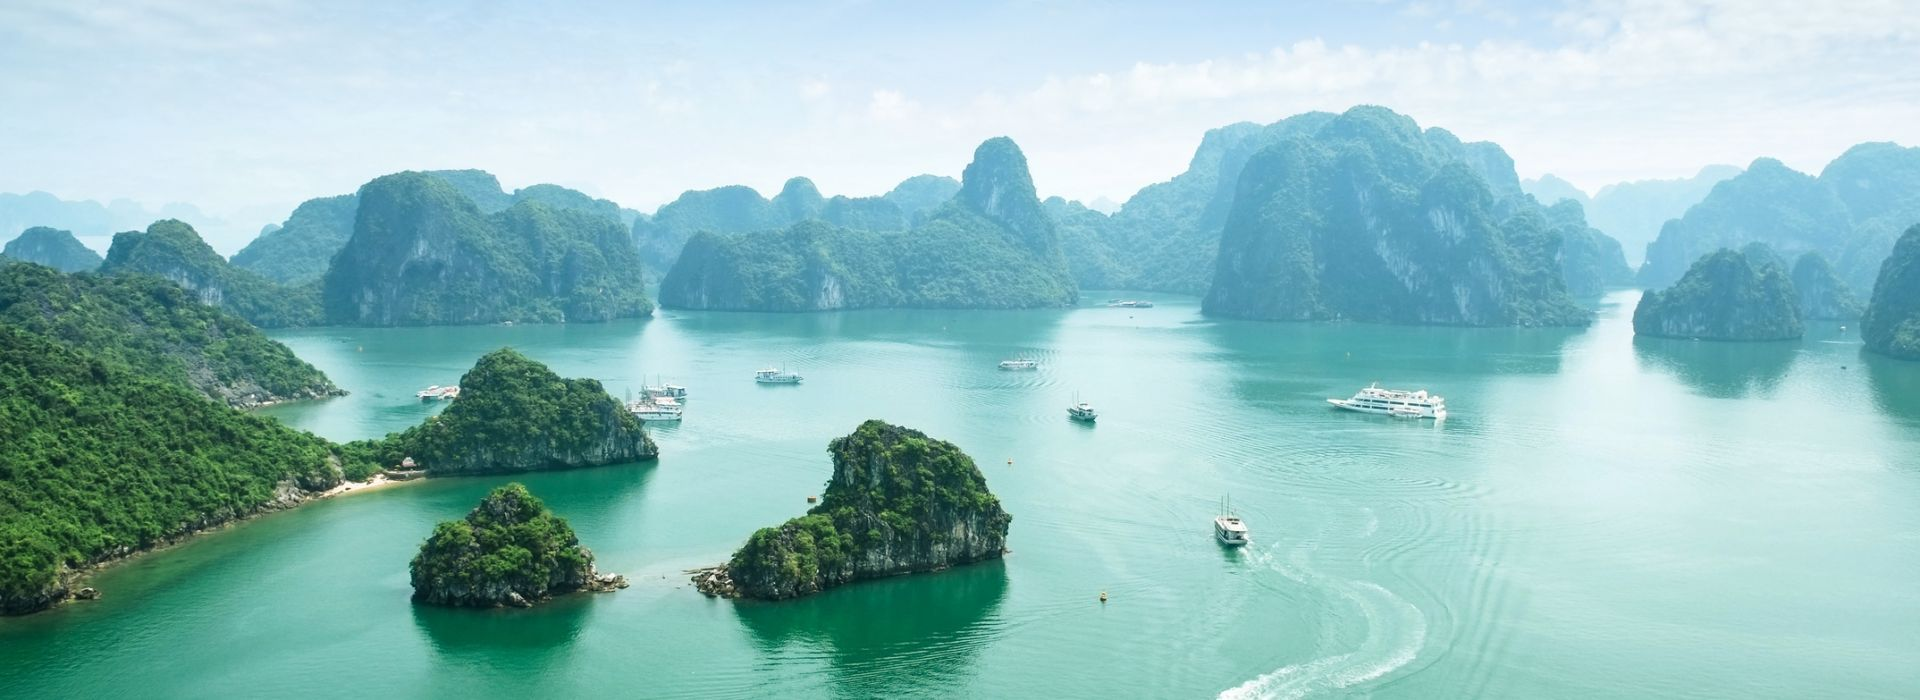 Special interests and hobbies Tours in Vietnam